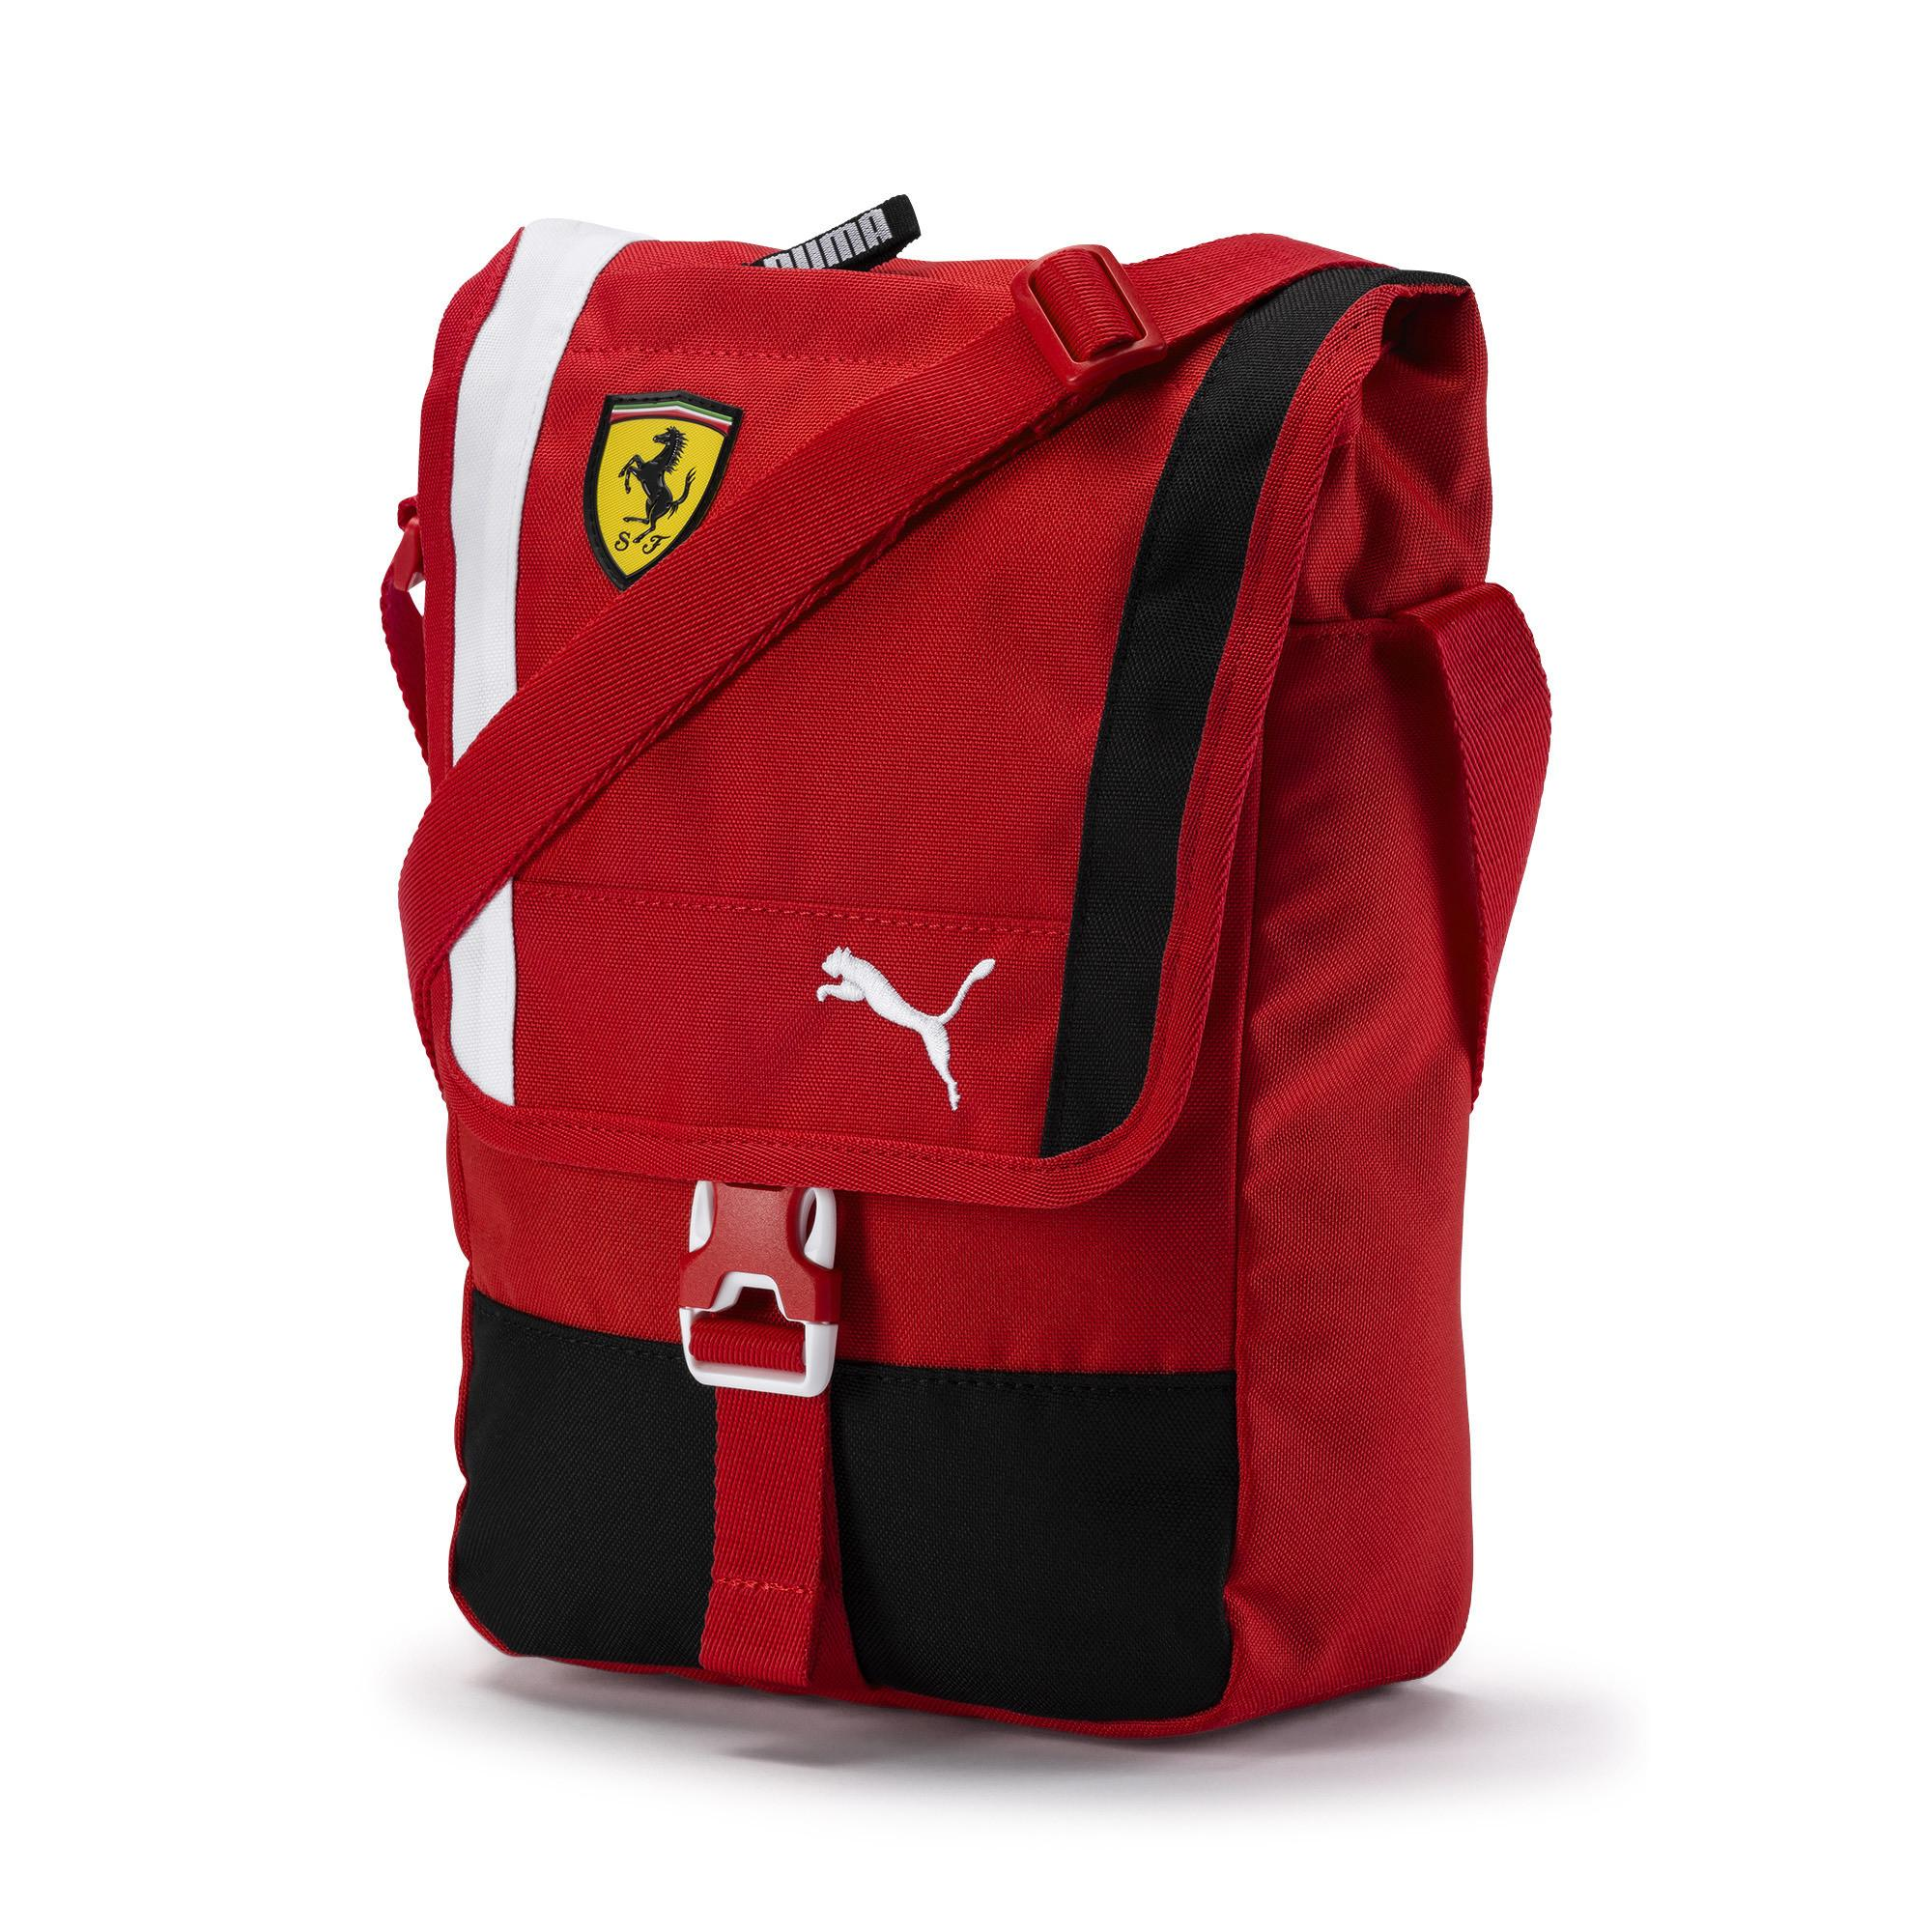 5a6efaf913976e Puma Products With Best Online Price At Lazada Malaysia